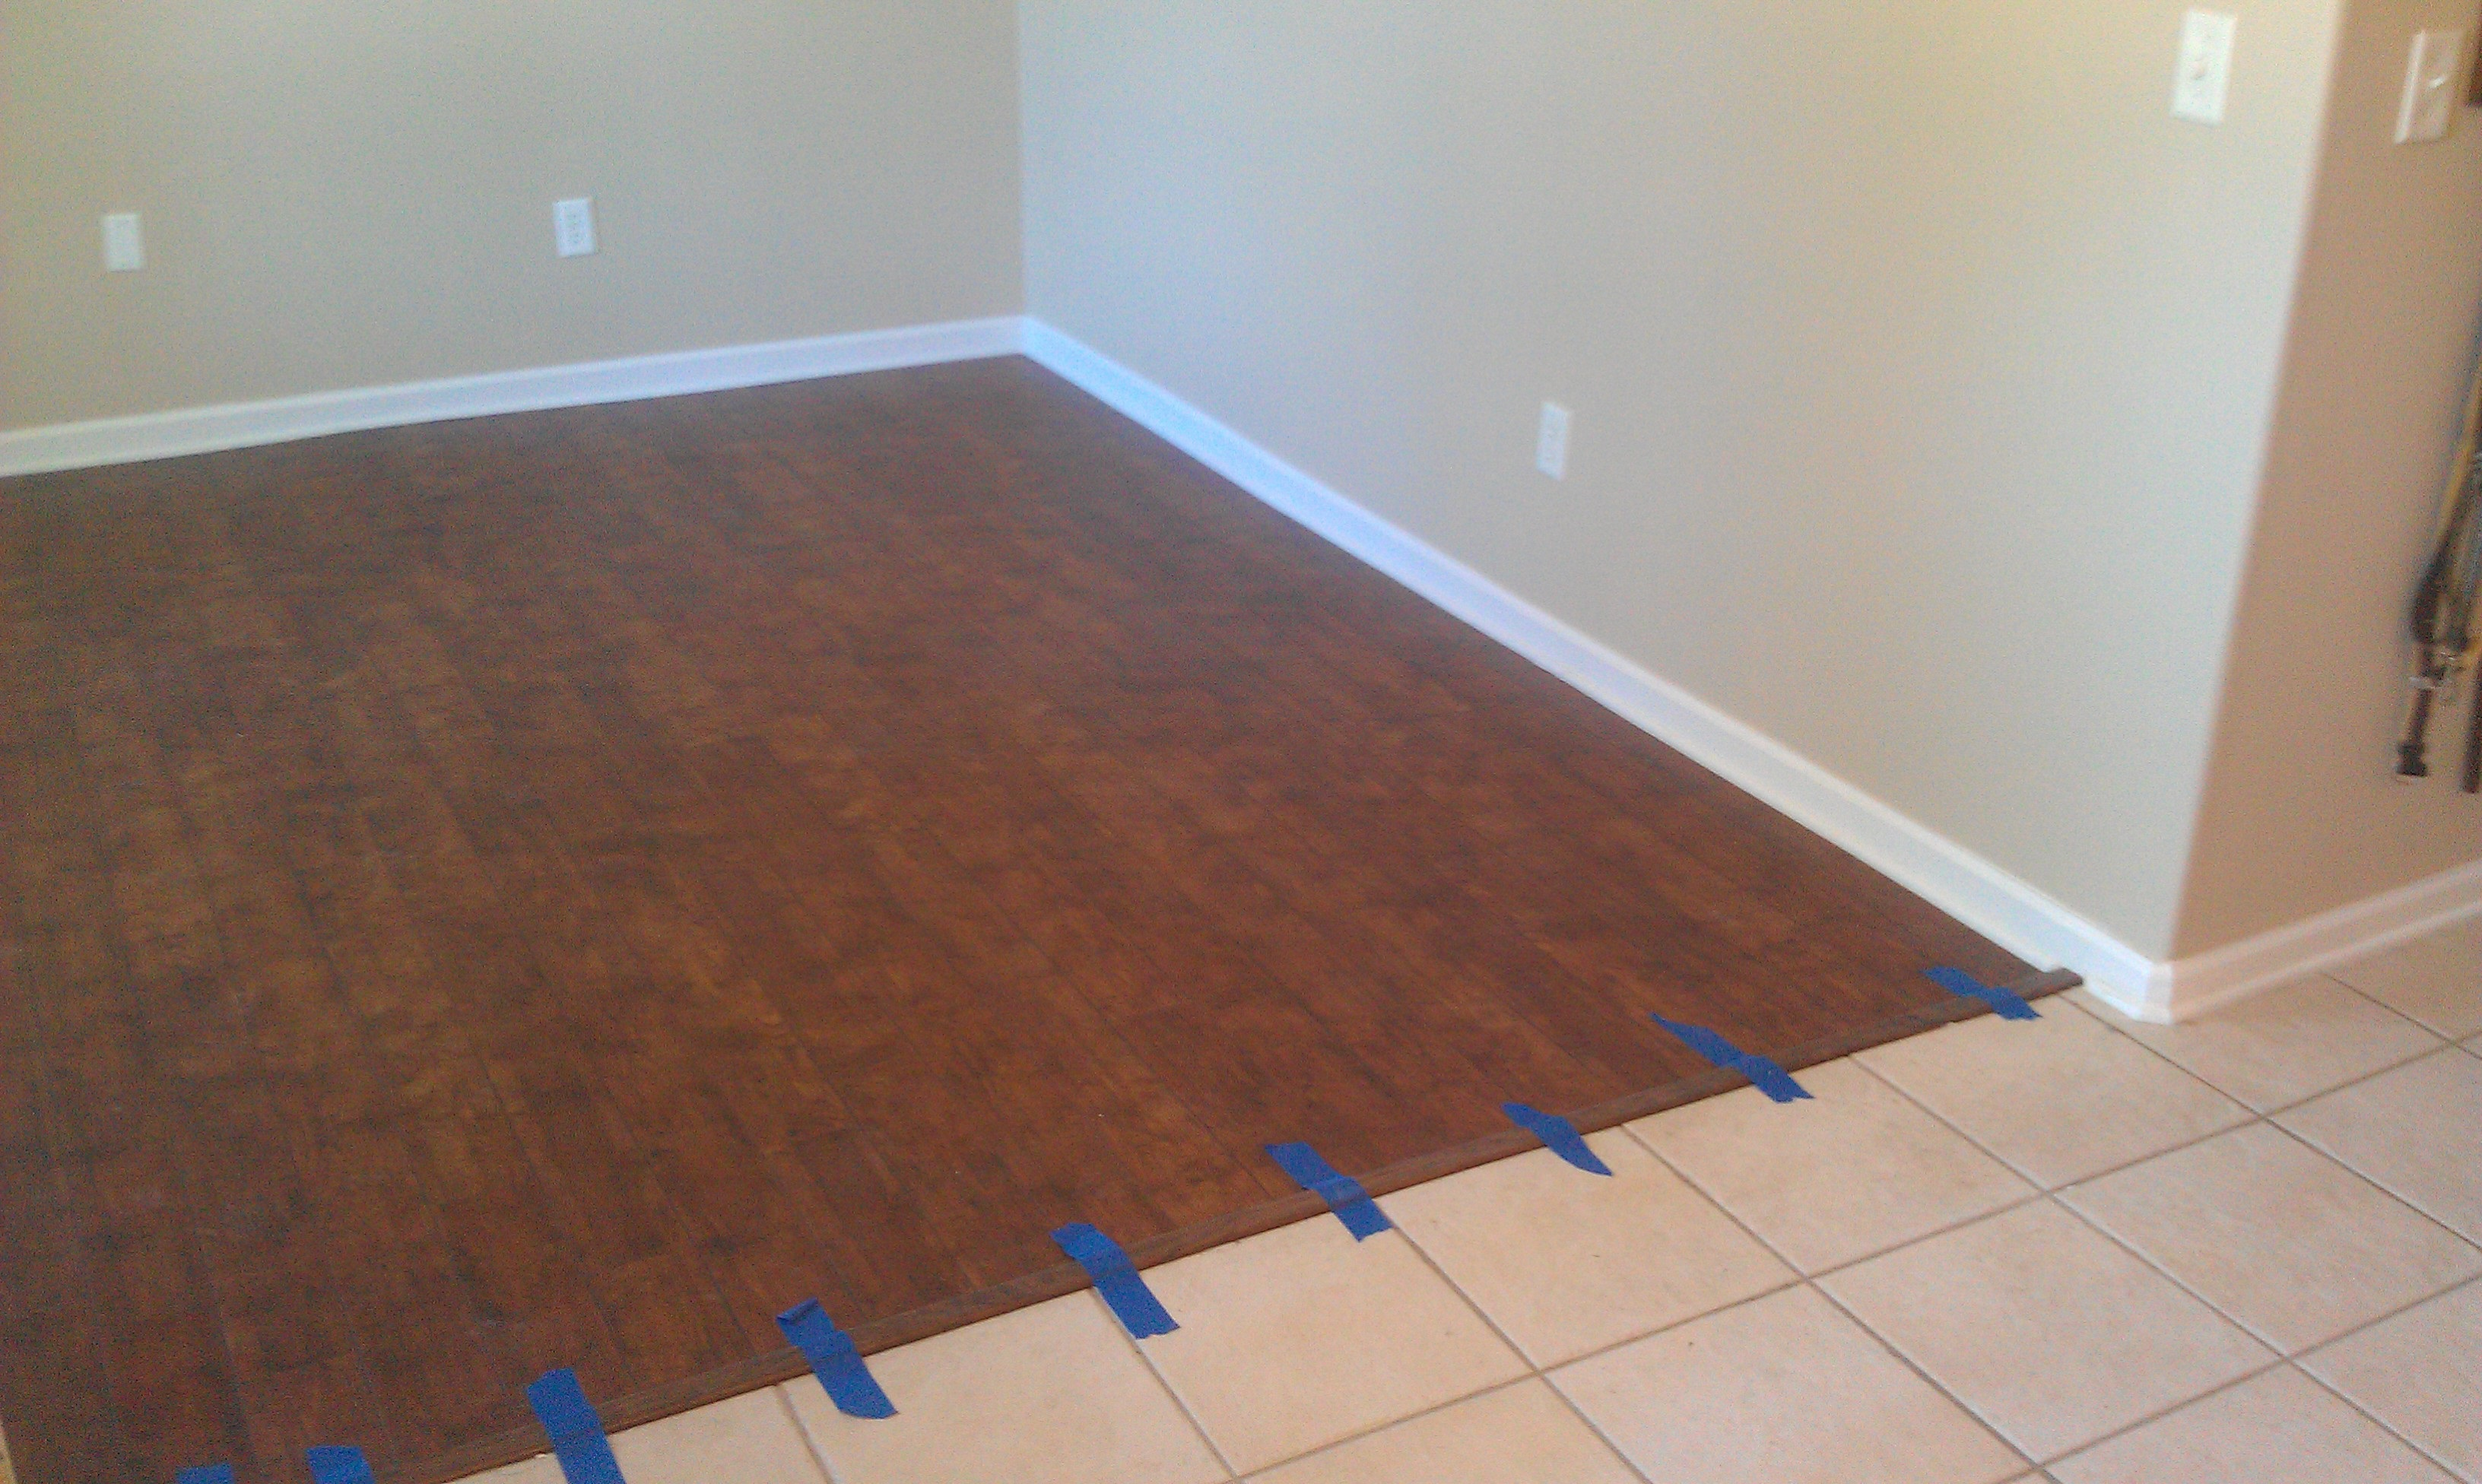 Refinishing linoleum floors carpet vidalondon for Painting vinyl floor tile